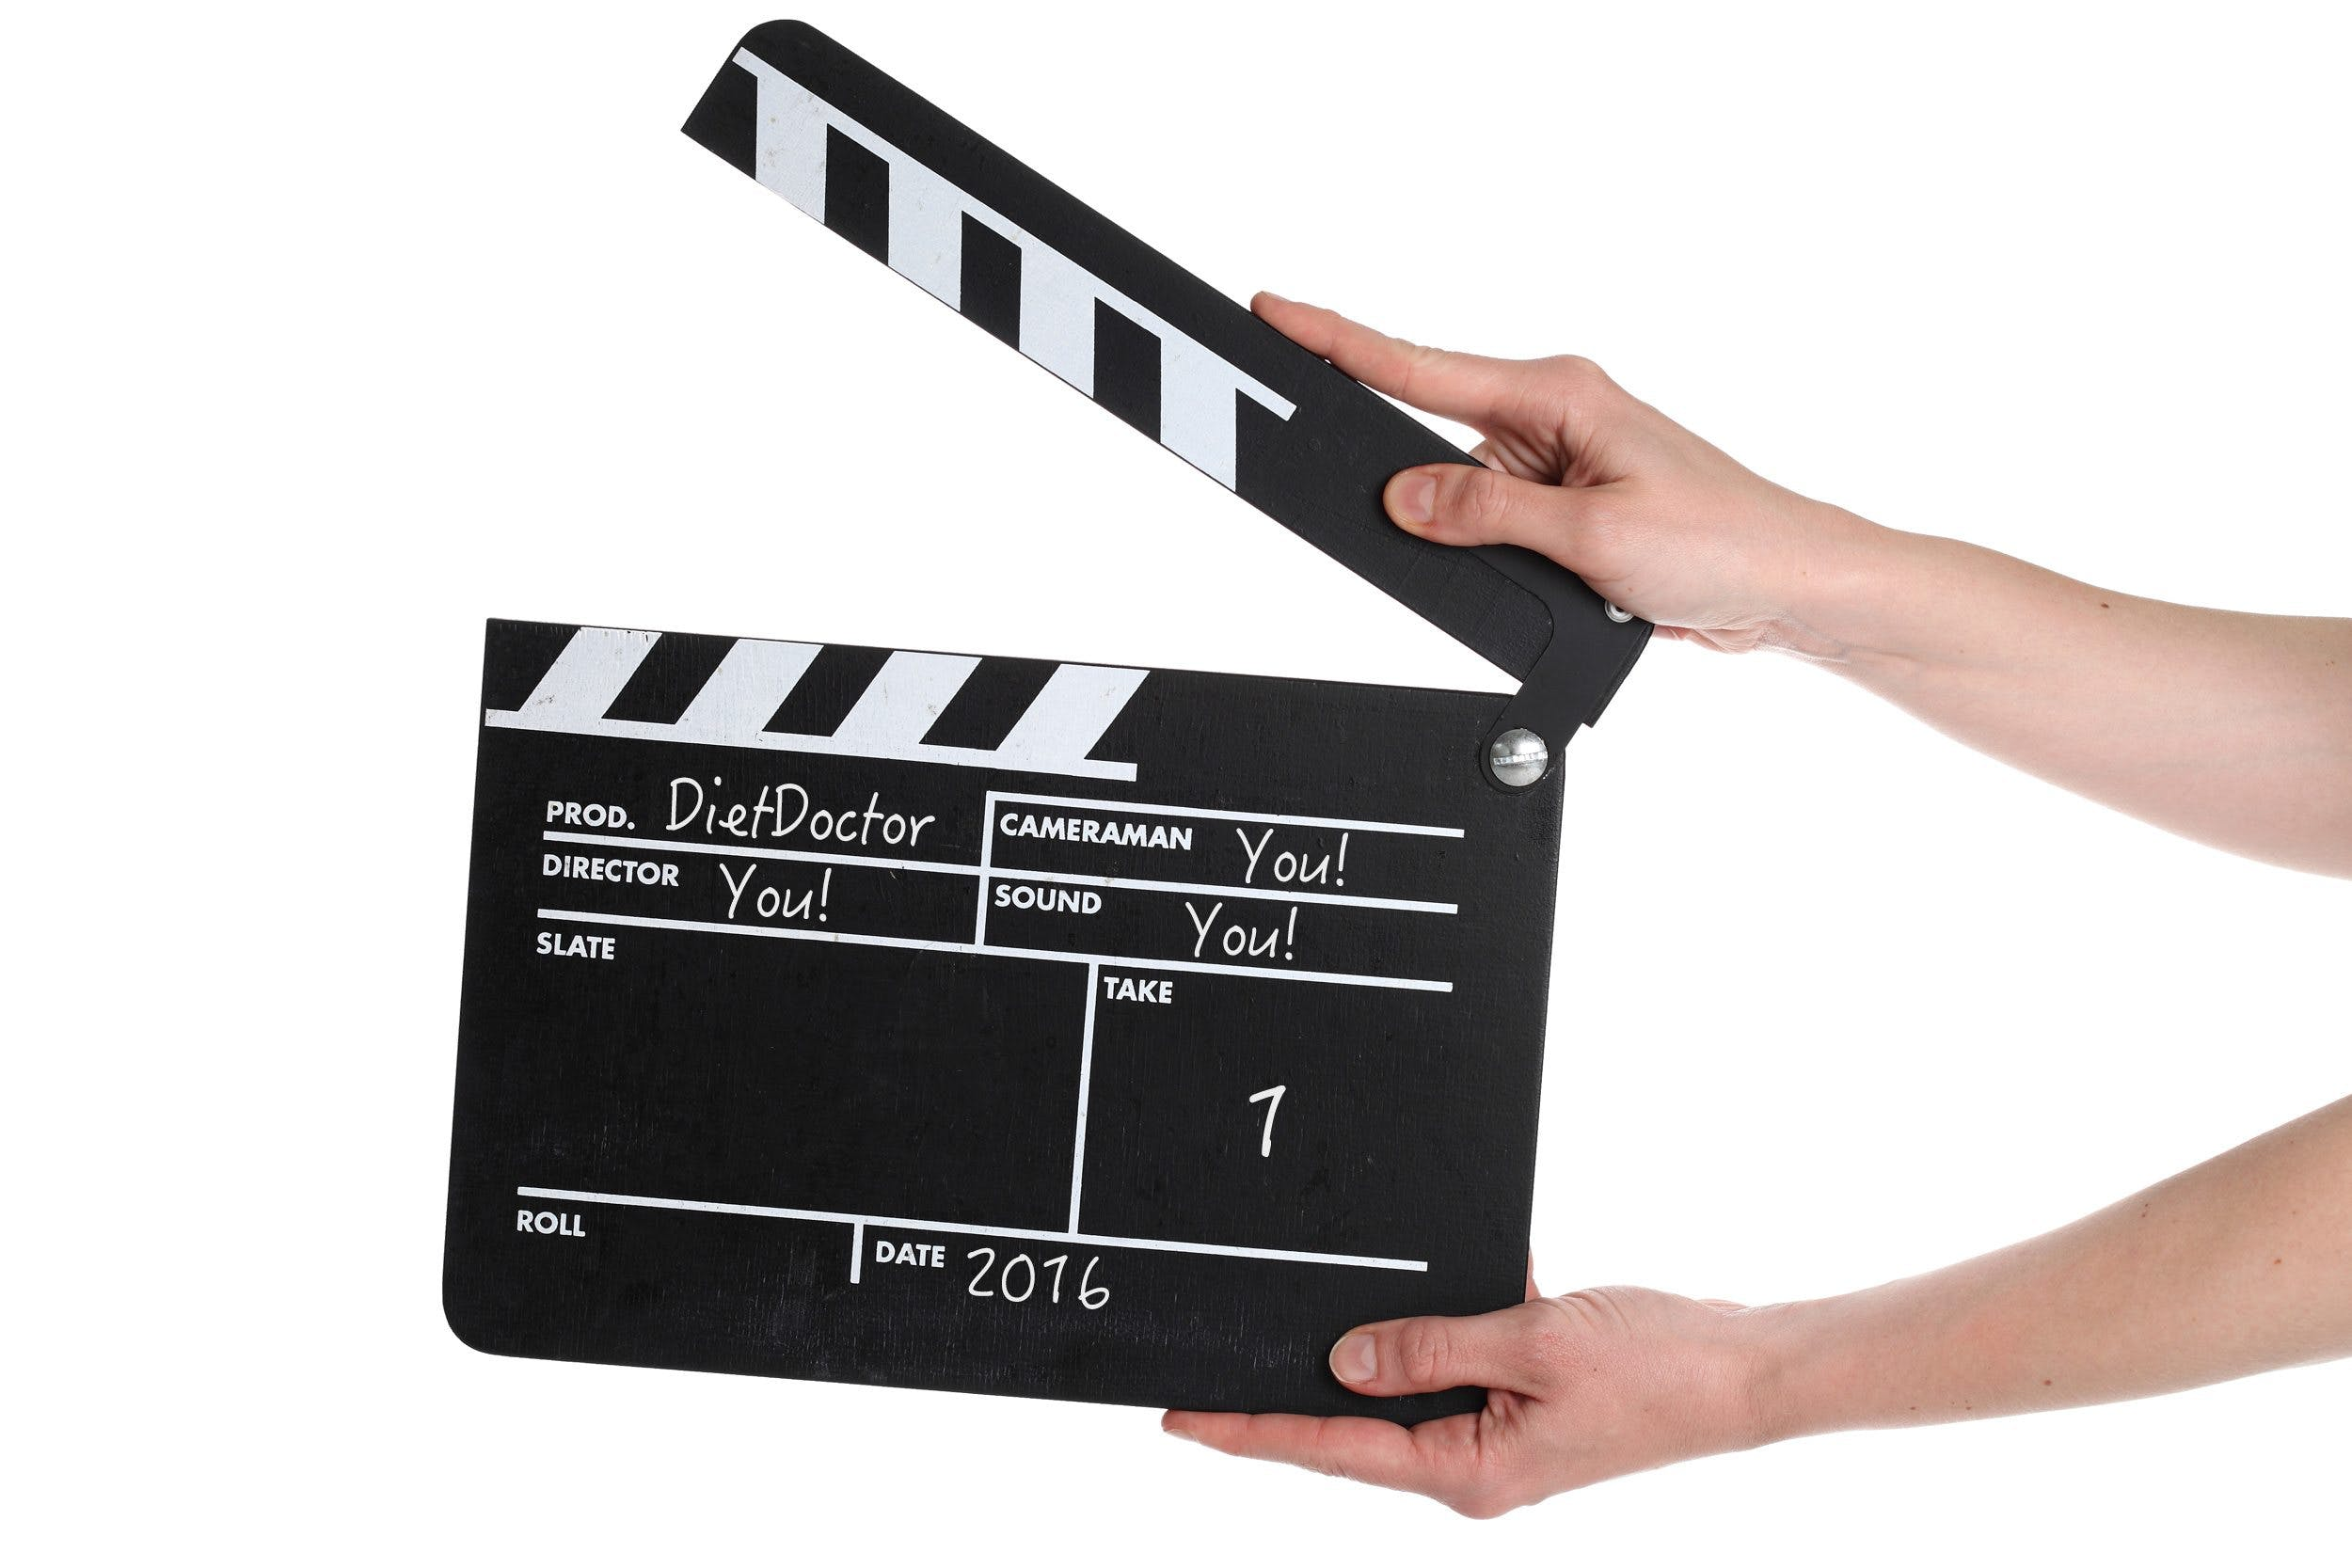 Are You Great at Video Editing? Change the World with Team Diet Doctor in Stockholm